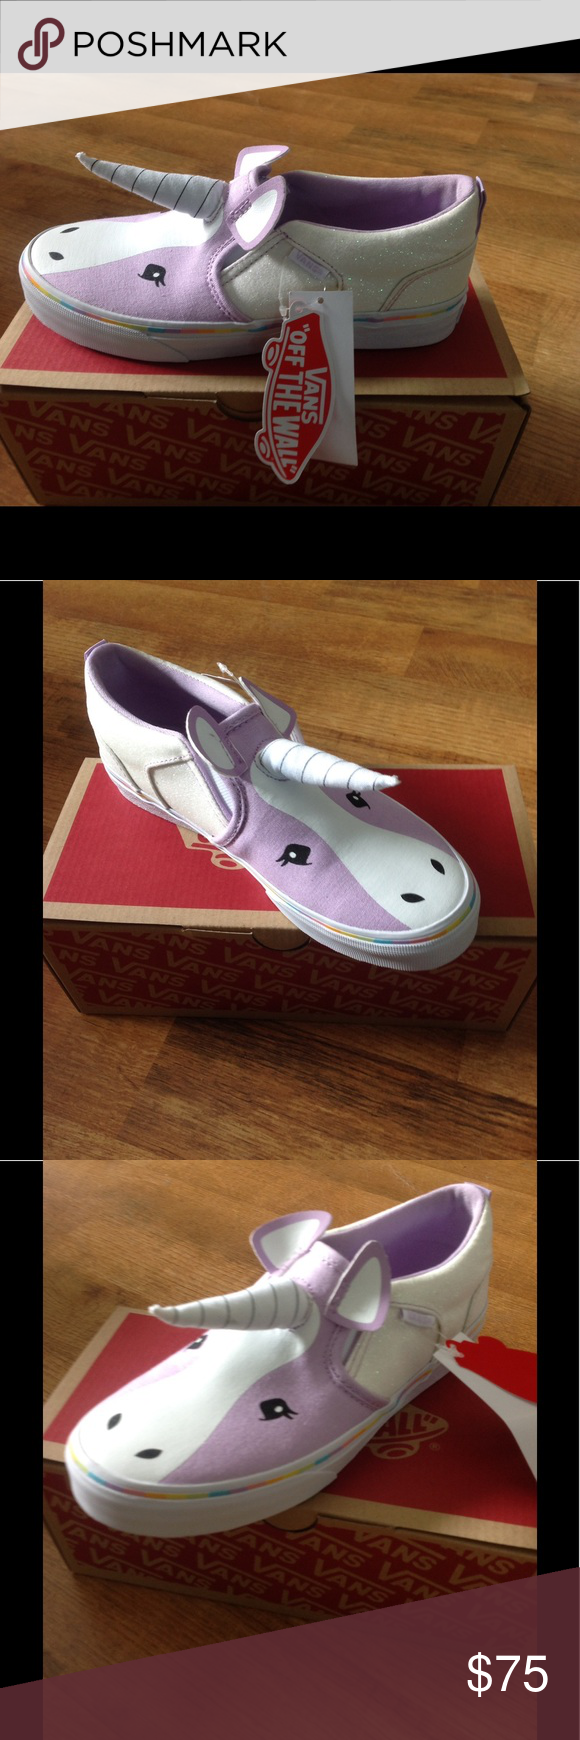 e4f825b151 Kids Unicorn Asher Vans Kids size 4.5 ( or Women s 6.5) slip on Asher  Unicorn Vans. These are sold out everywhere! Super hard to find! Vans Shoes  Sneakers